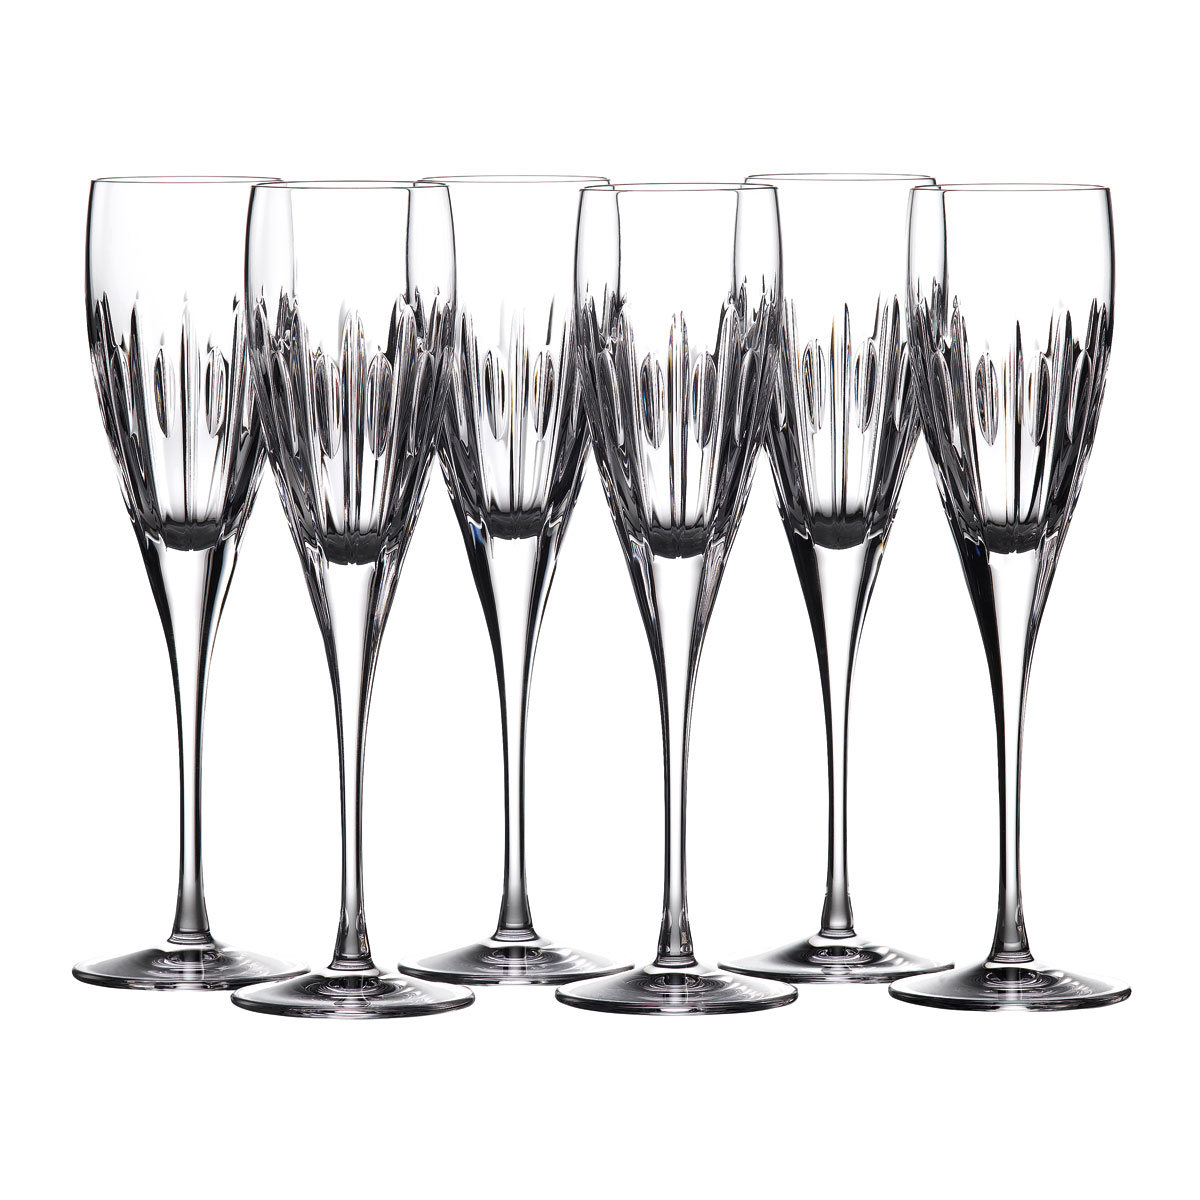 Waterford Crystal Ardan Mara Flutes, Set of 6